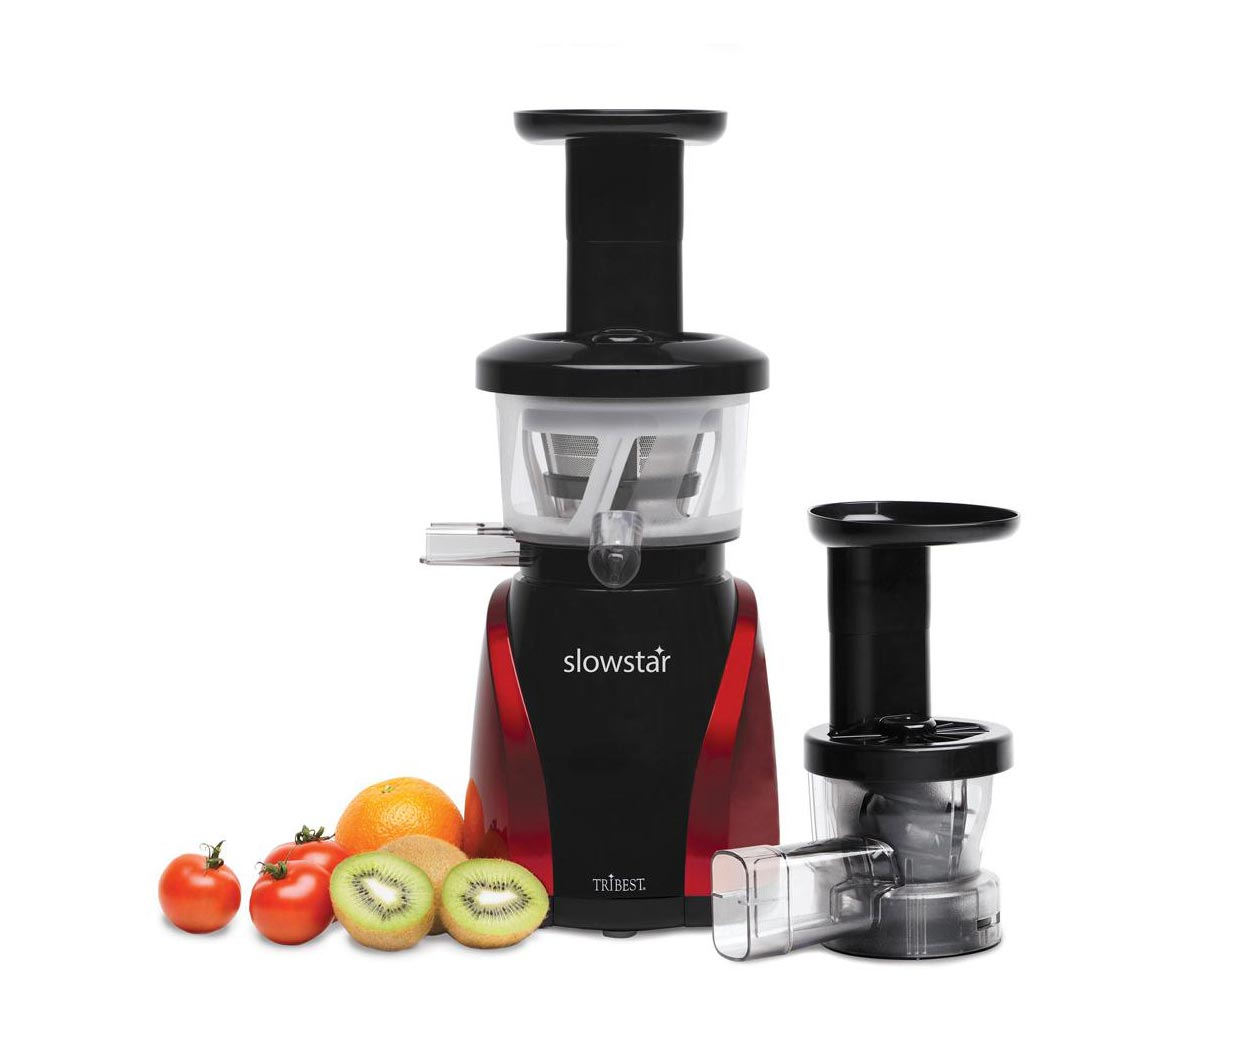 Tribest Slowstar Juicer Review. Is this Tribest juicer the best juicer to buy?